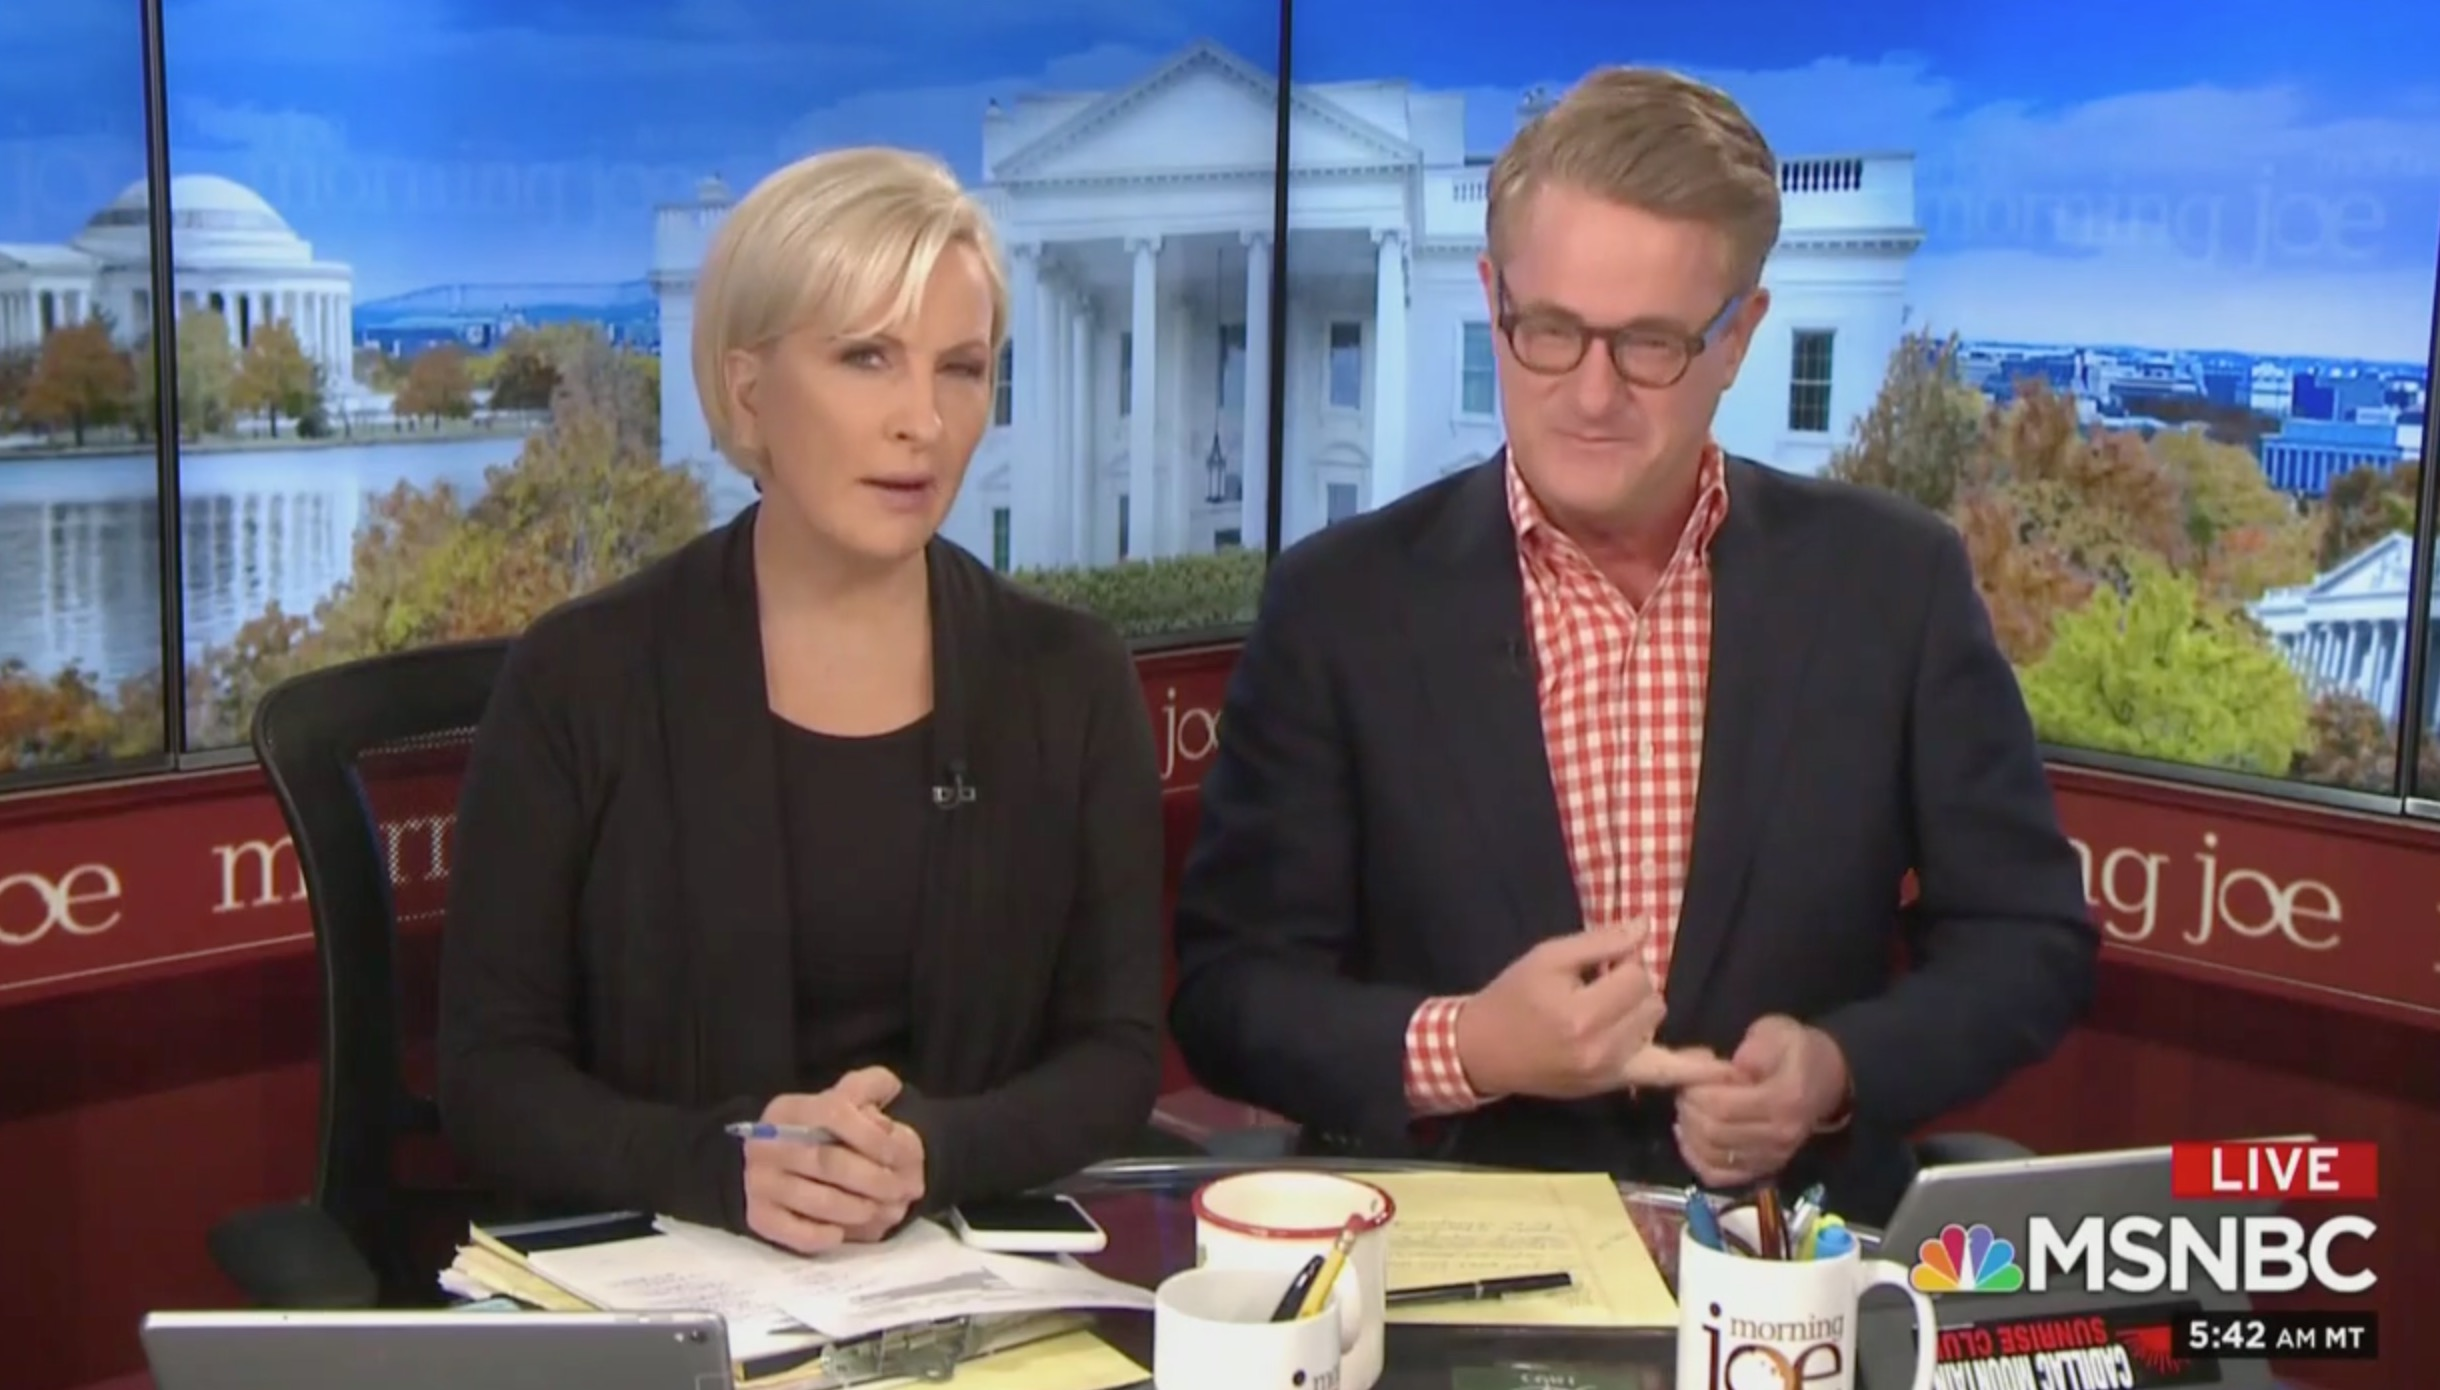 Joe Scarborough Laughs at Nikki Haley Calling Trump 'Truthful': 'You Can Smell the Corruption'